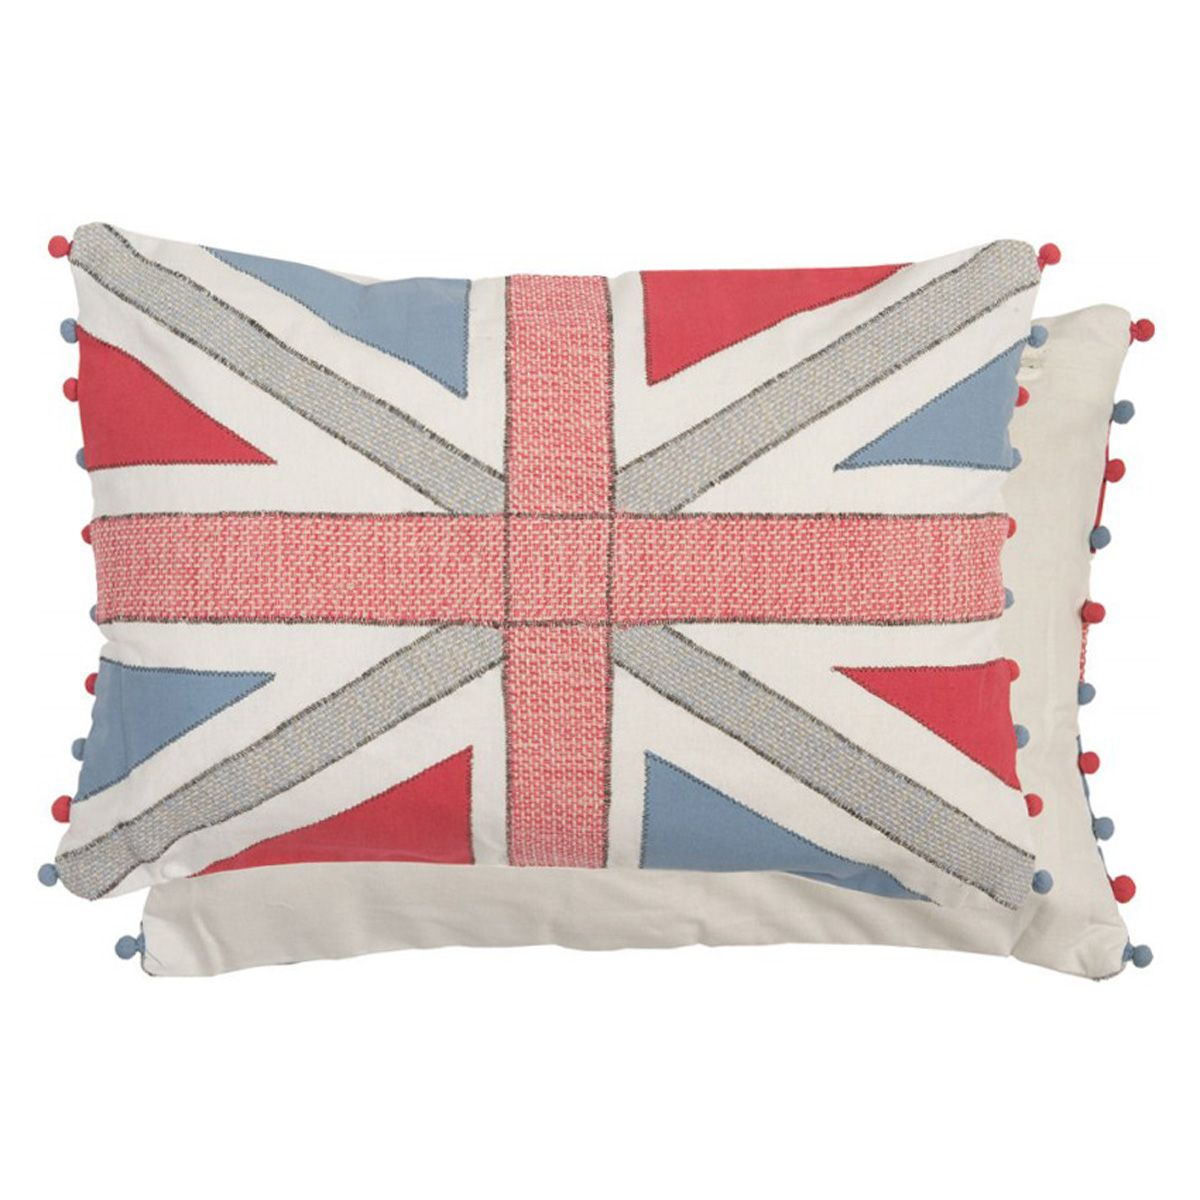 kissen union jack in blau rot mit bommeln 50x35 von clayre eef. Black Bedroom Furniture Sets. Home Design Ideas